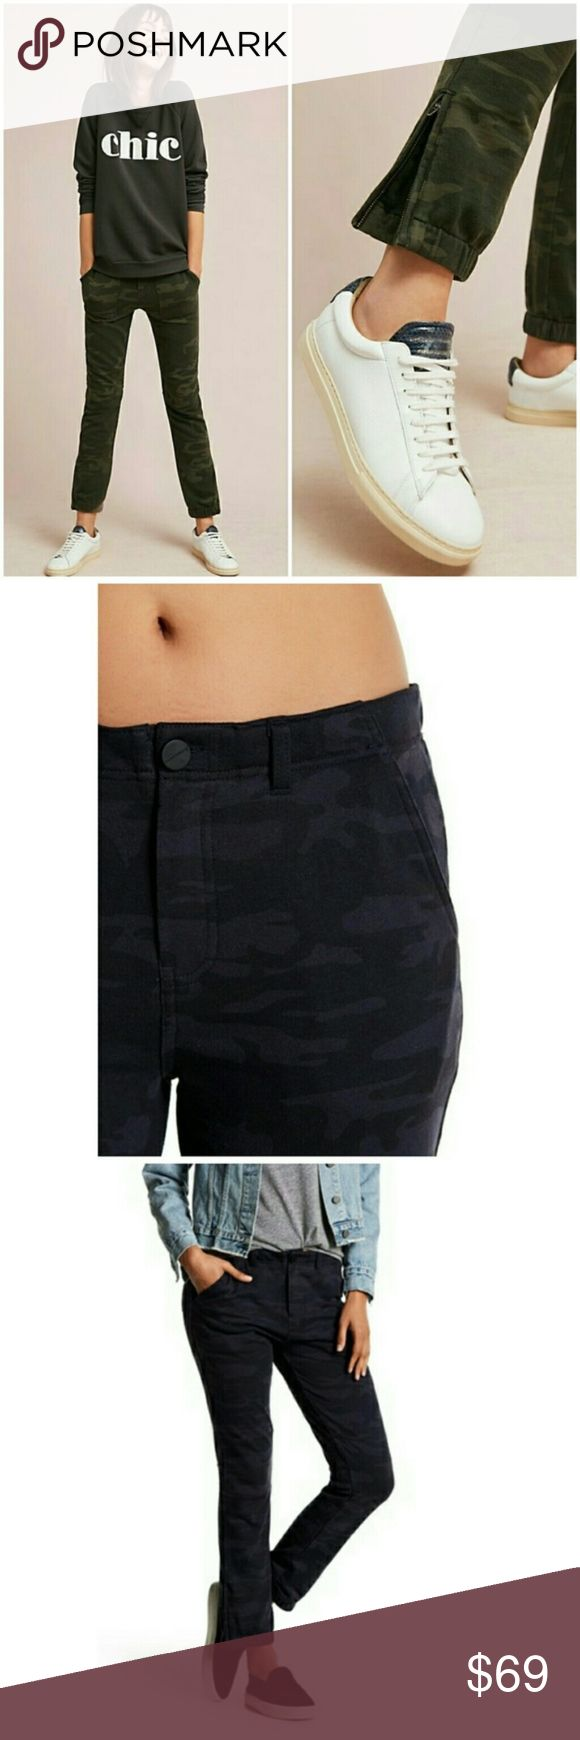 """Anthropologie Sanctuary camo joggers in Navy Super soft/comfy, with a slight low rise, these navy camo joggers go with everything! Skinny joggers, they hug your shape in a flattering way and feel like pajamas! Sexy AND comfortable.You will love!!    - Cotton, poly, elastane blend - Front patch pockets - Front zip and button  - Ankle zip details   - Machine wash  - Imported    """"Contemporary yet timeless, Sanctuary embodies carefree California style and edgy East Coast fashion equally""""…"""